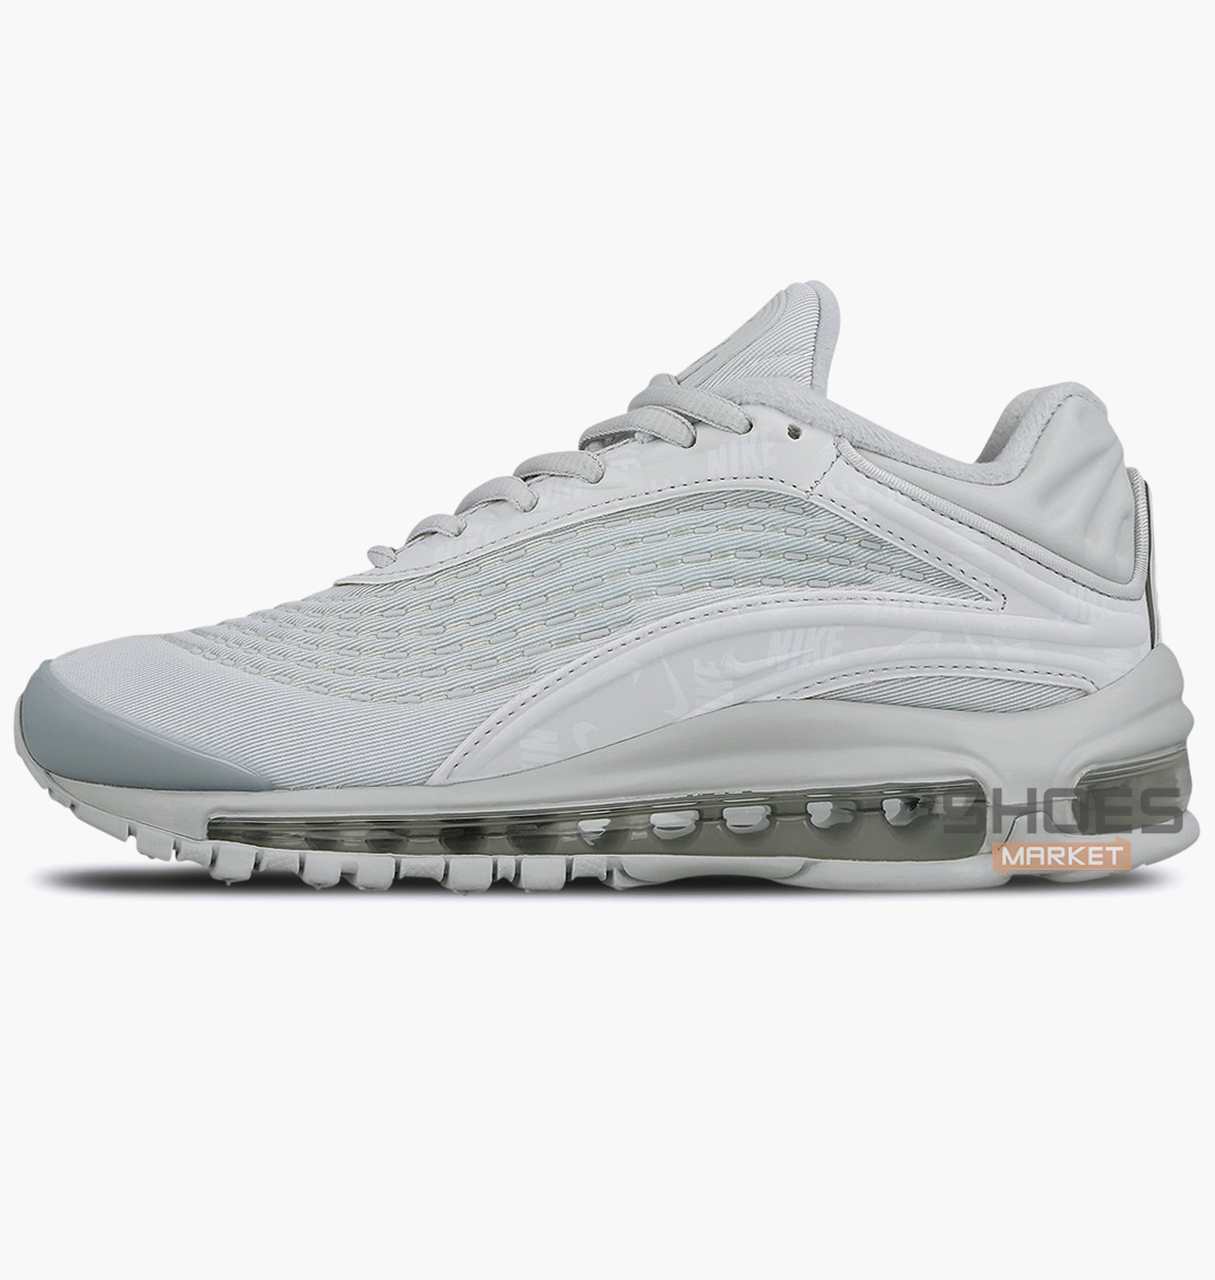 205ae570 Женские кроссовки Nike Wmns Air Max Deluxe SE